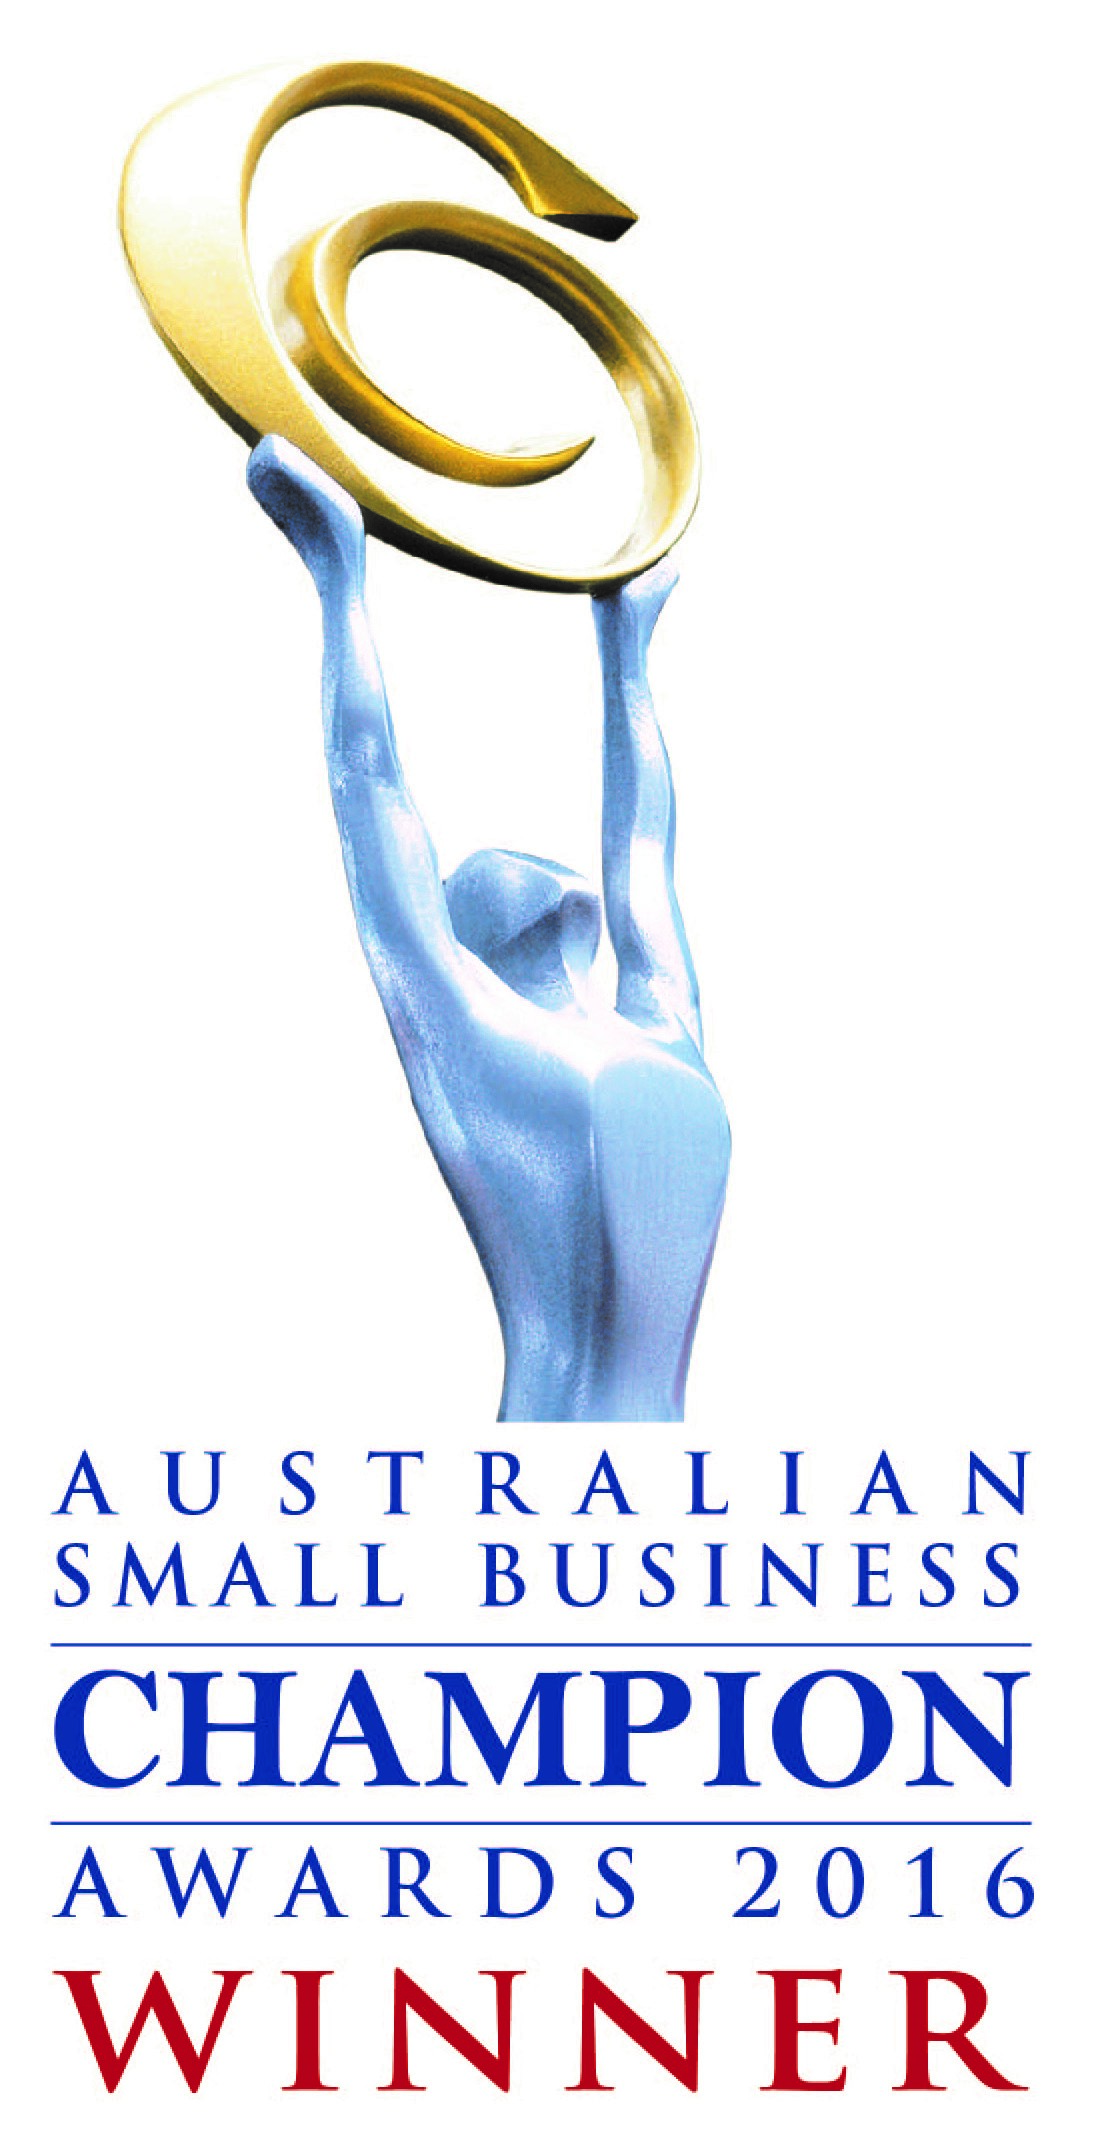 Winner for the 2016 Australian Small Business Champion Awards